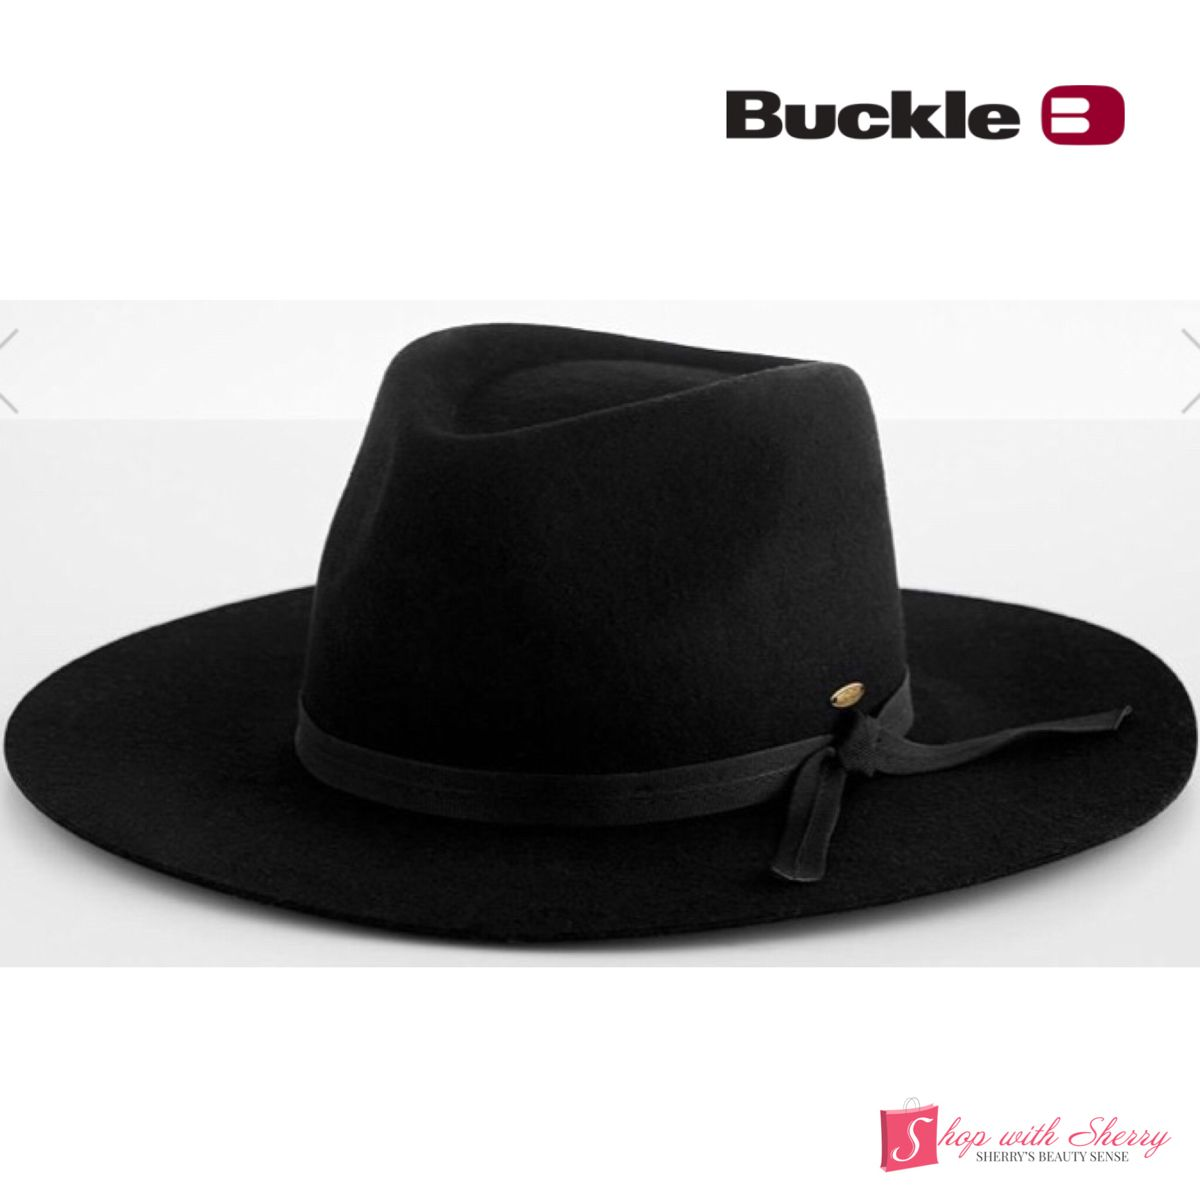 You're going to love this trendy Wool panama hat from #bucklestyle on #shopwithsherry and #sherrysbeautysense #hats #fashiontrend #shoppingonline #styleinspiration